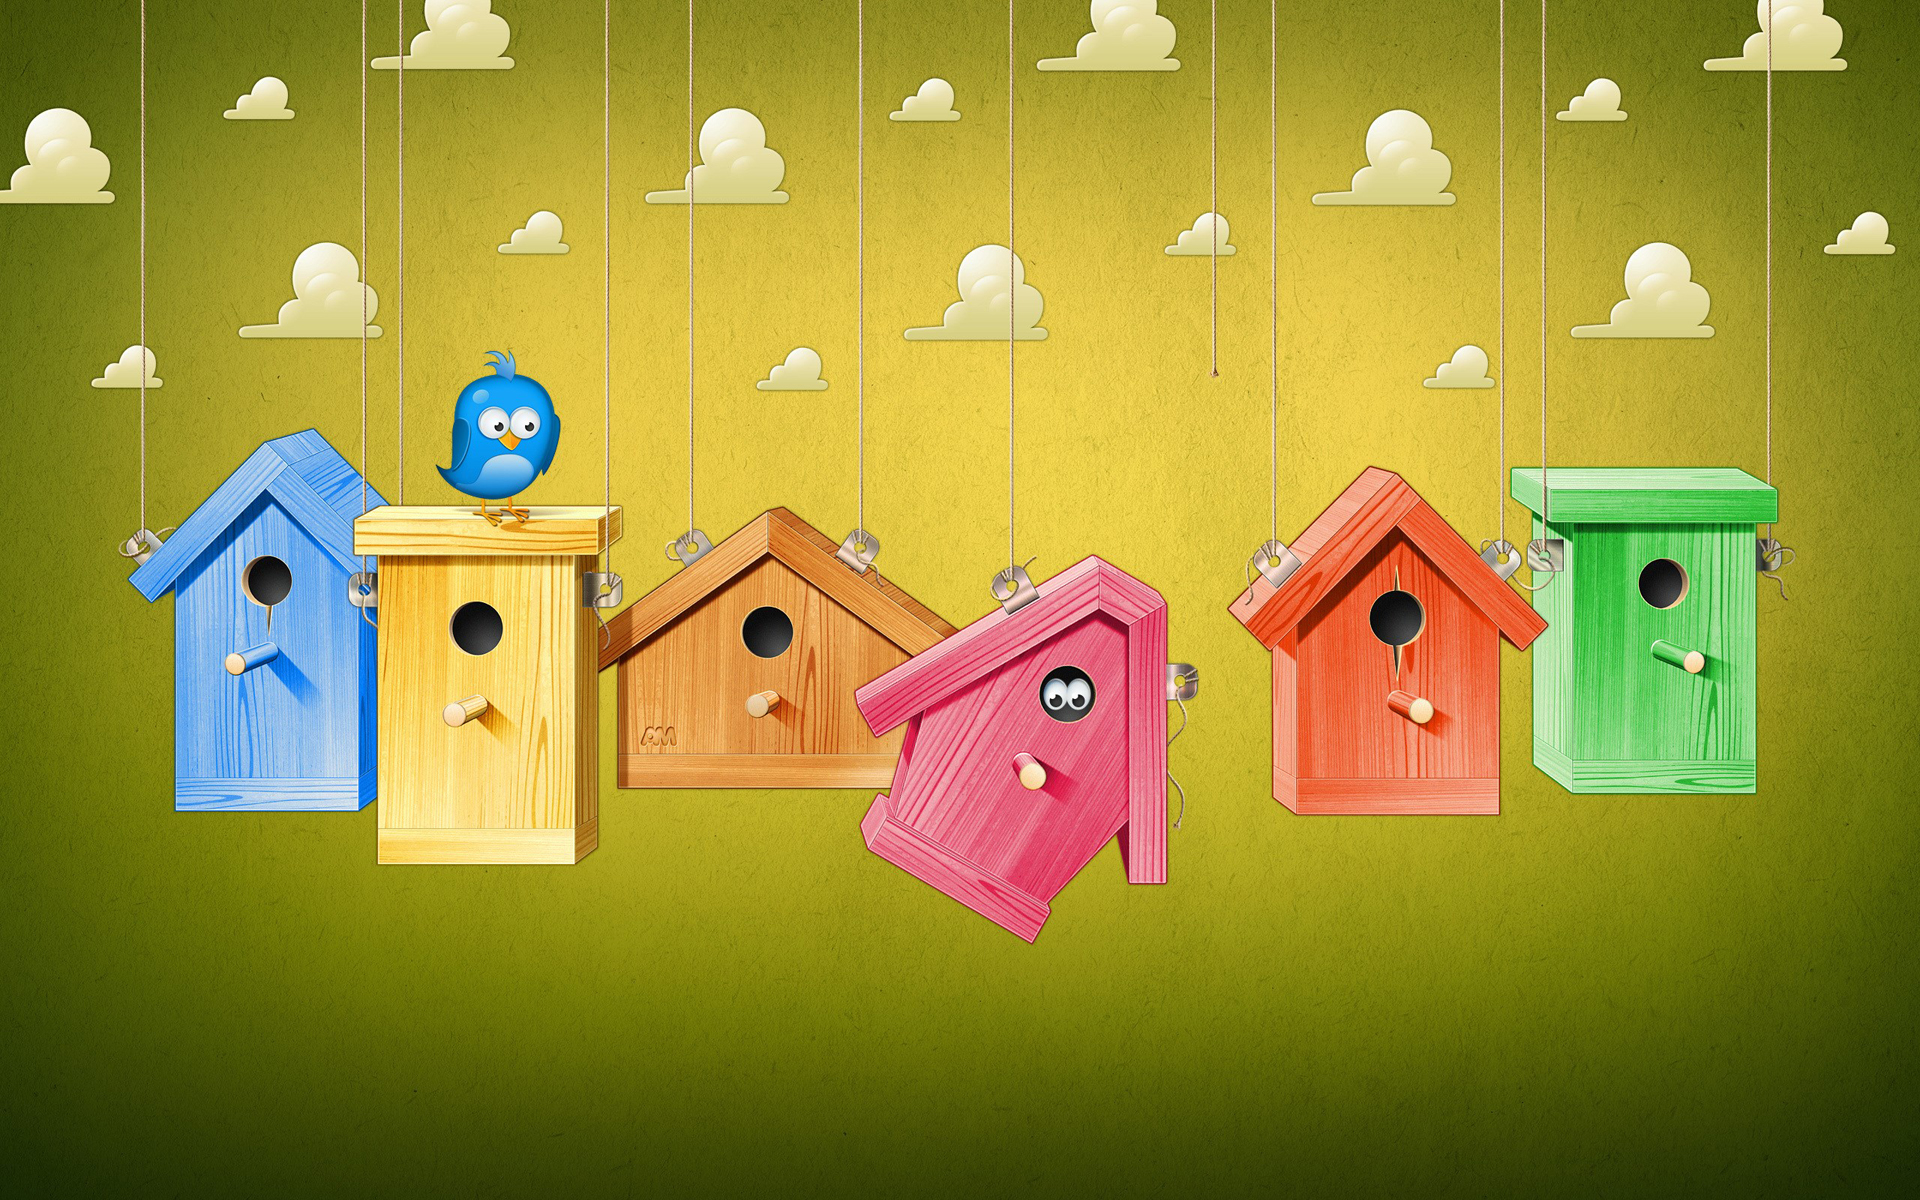 Bird wallpaper for home wallpapersafari for Wallpaper home cartoon